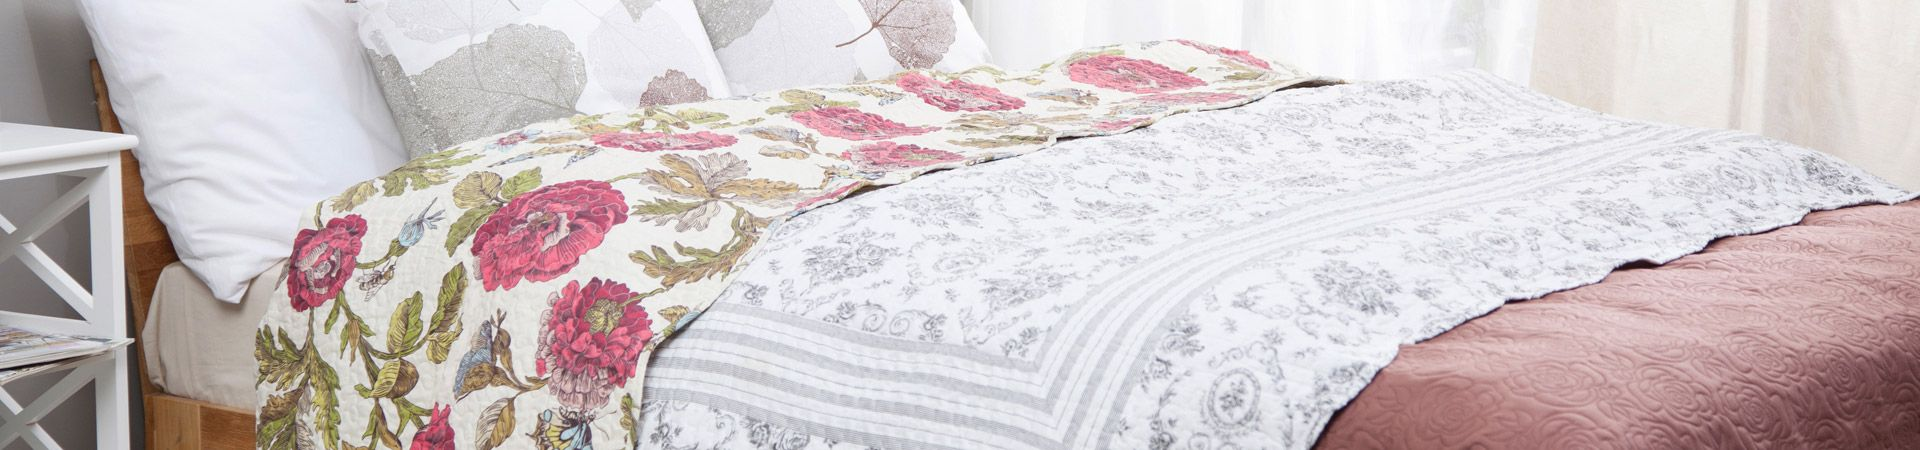 rugs_and_bed_coverlets